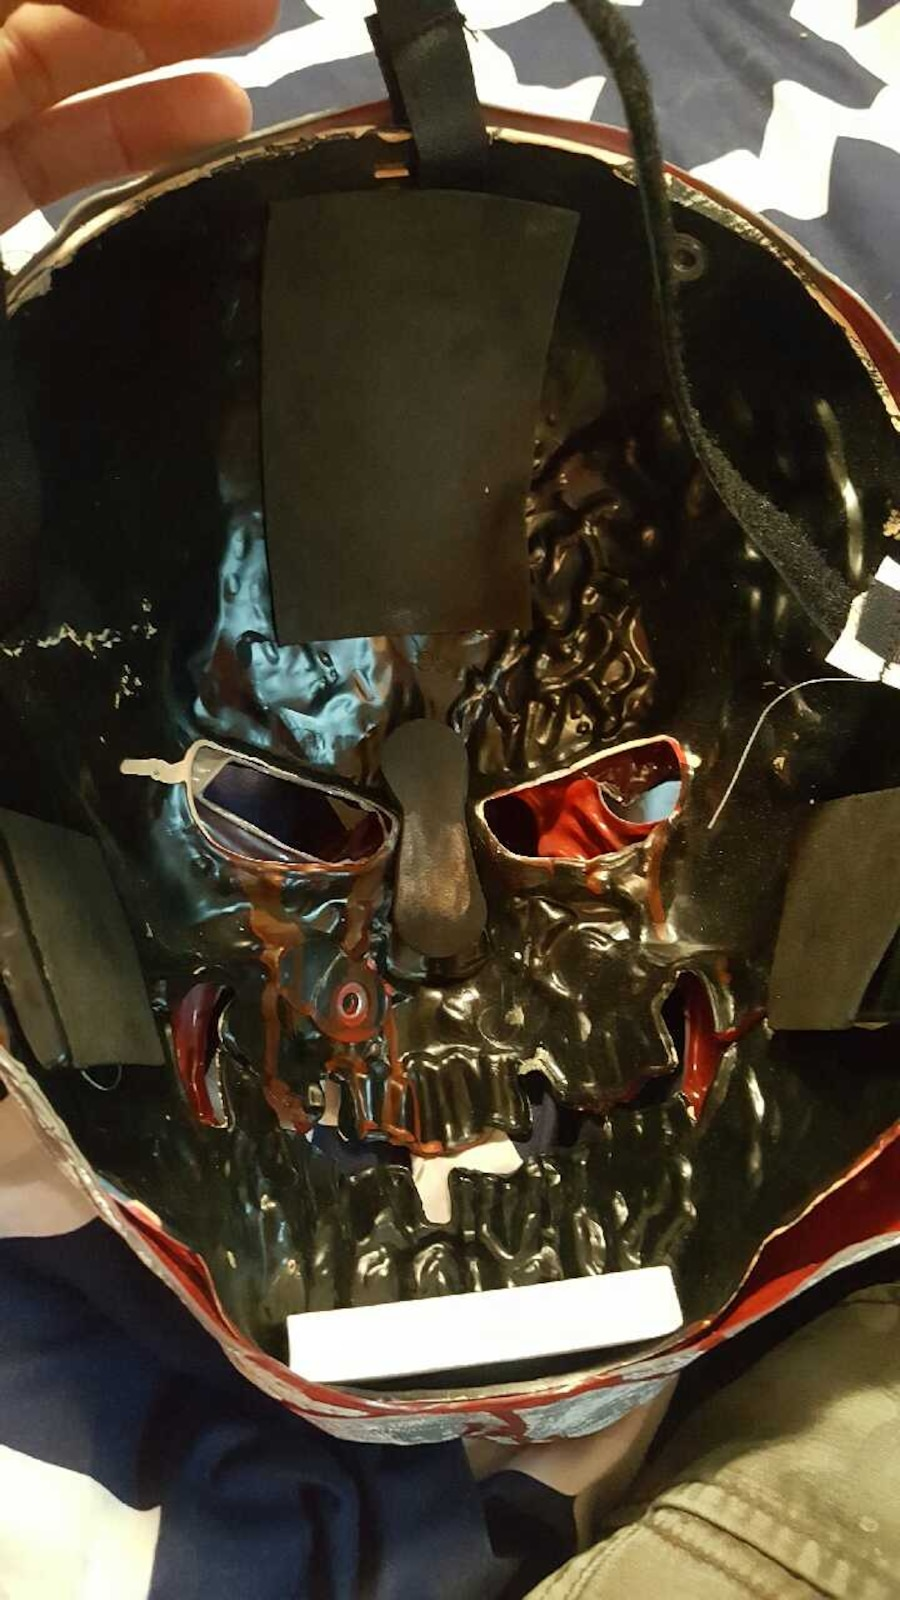 letgo - clown Halloween mask with moving mouth in Benton, KY